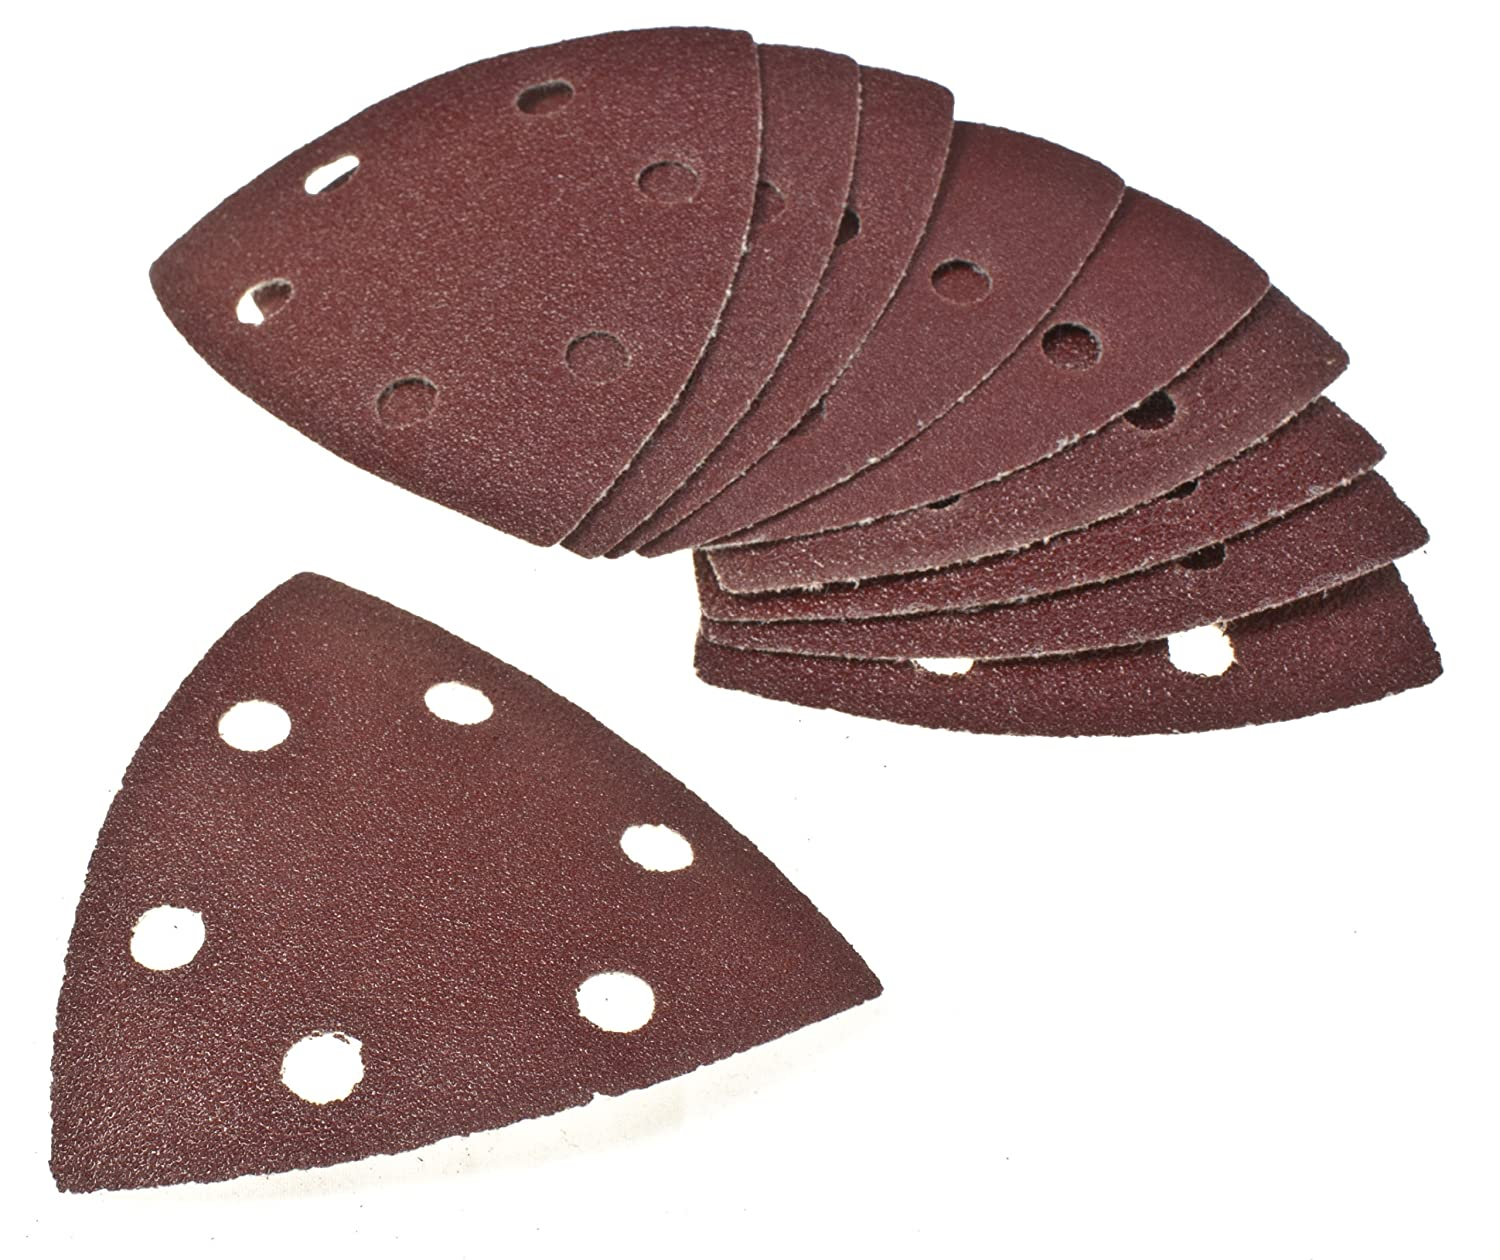 Toolzone 10Pc 90mm Hook and Loop Backed Delta Triangle Sander Sandpaper Pads Sheets Sanding Pads